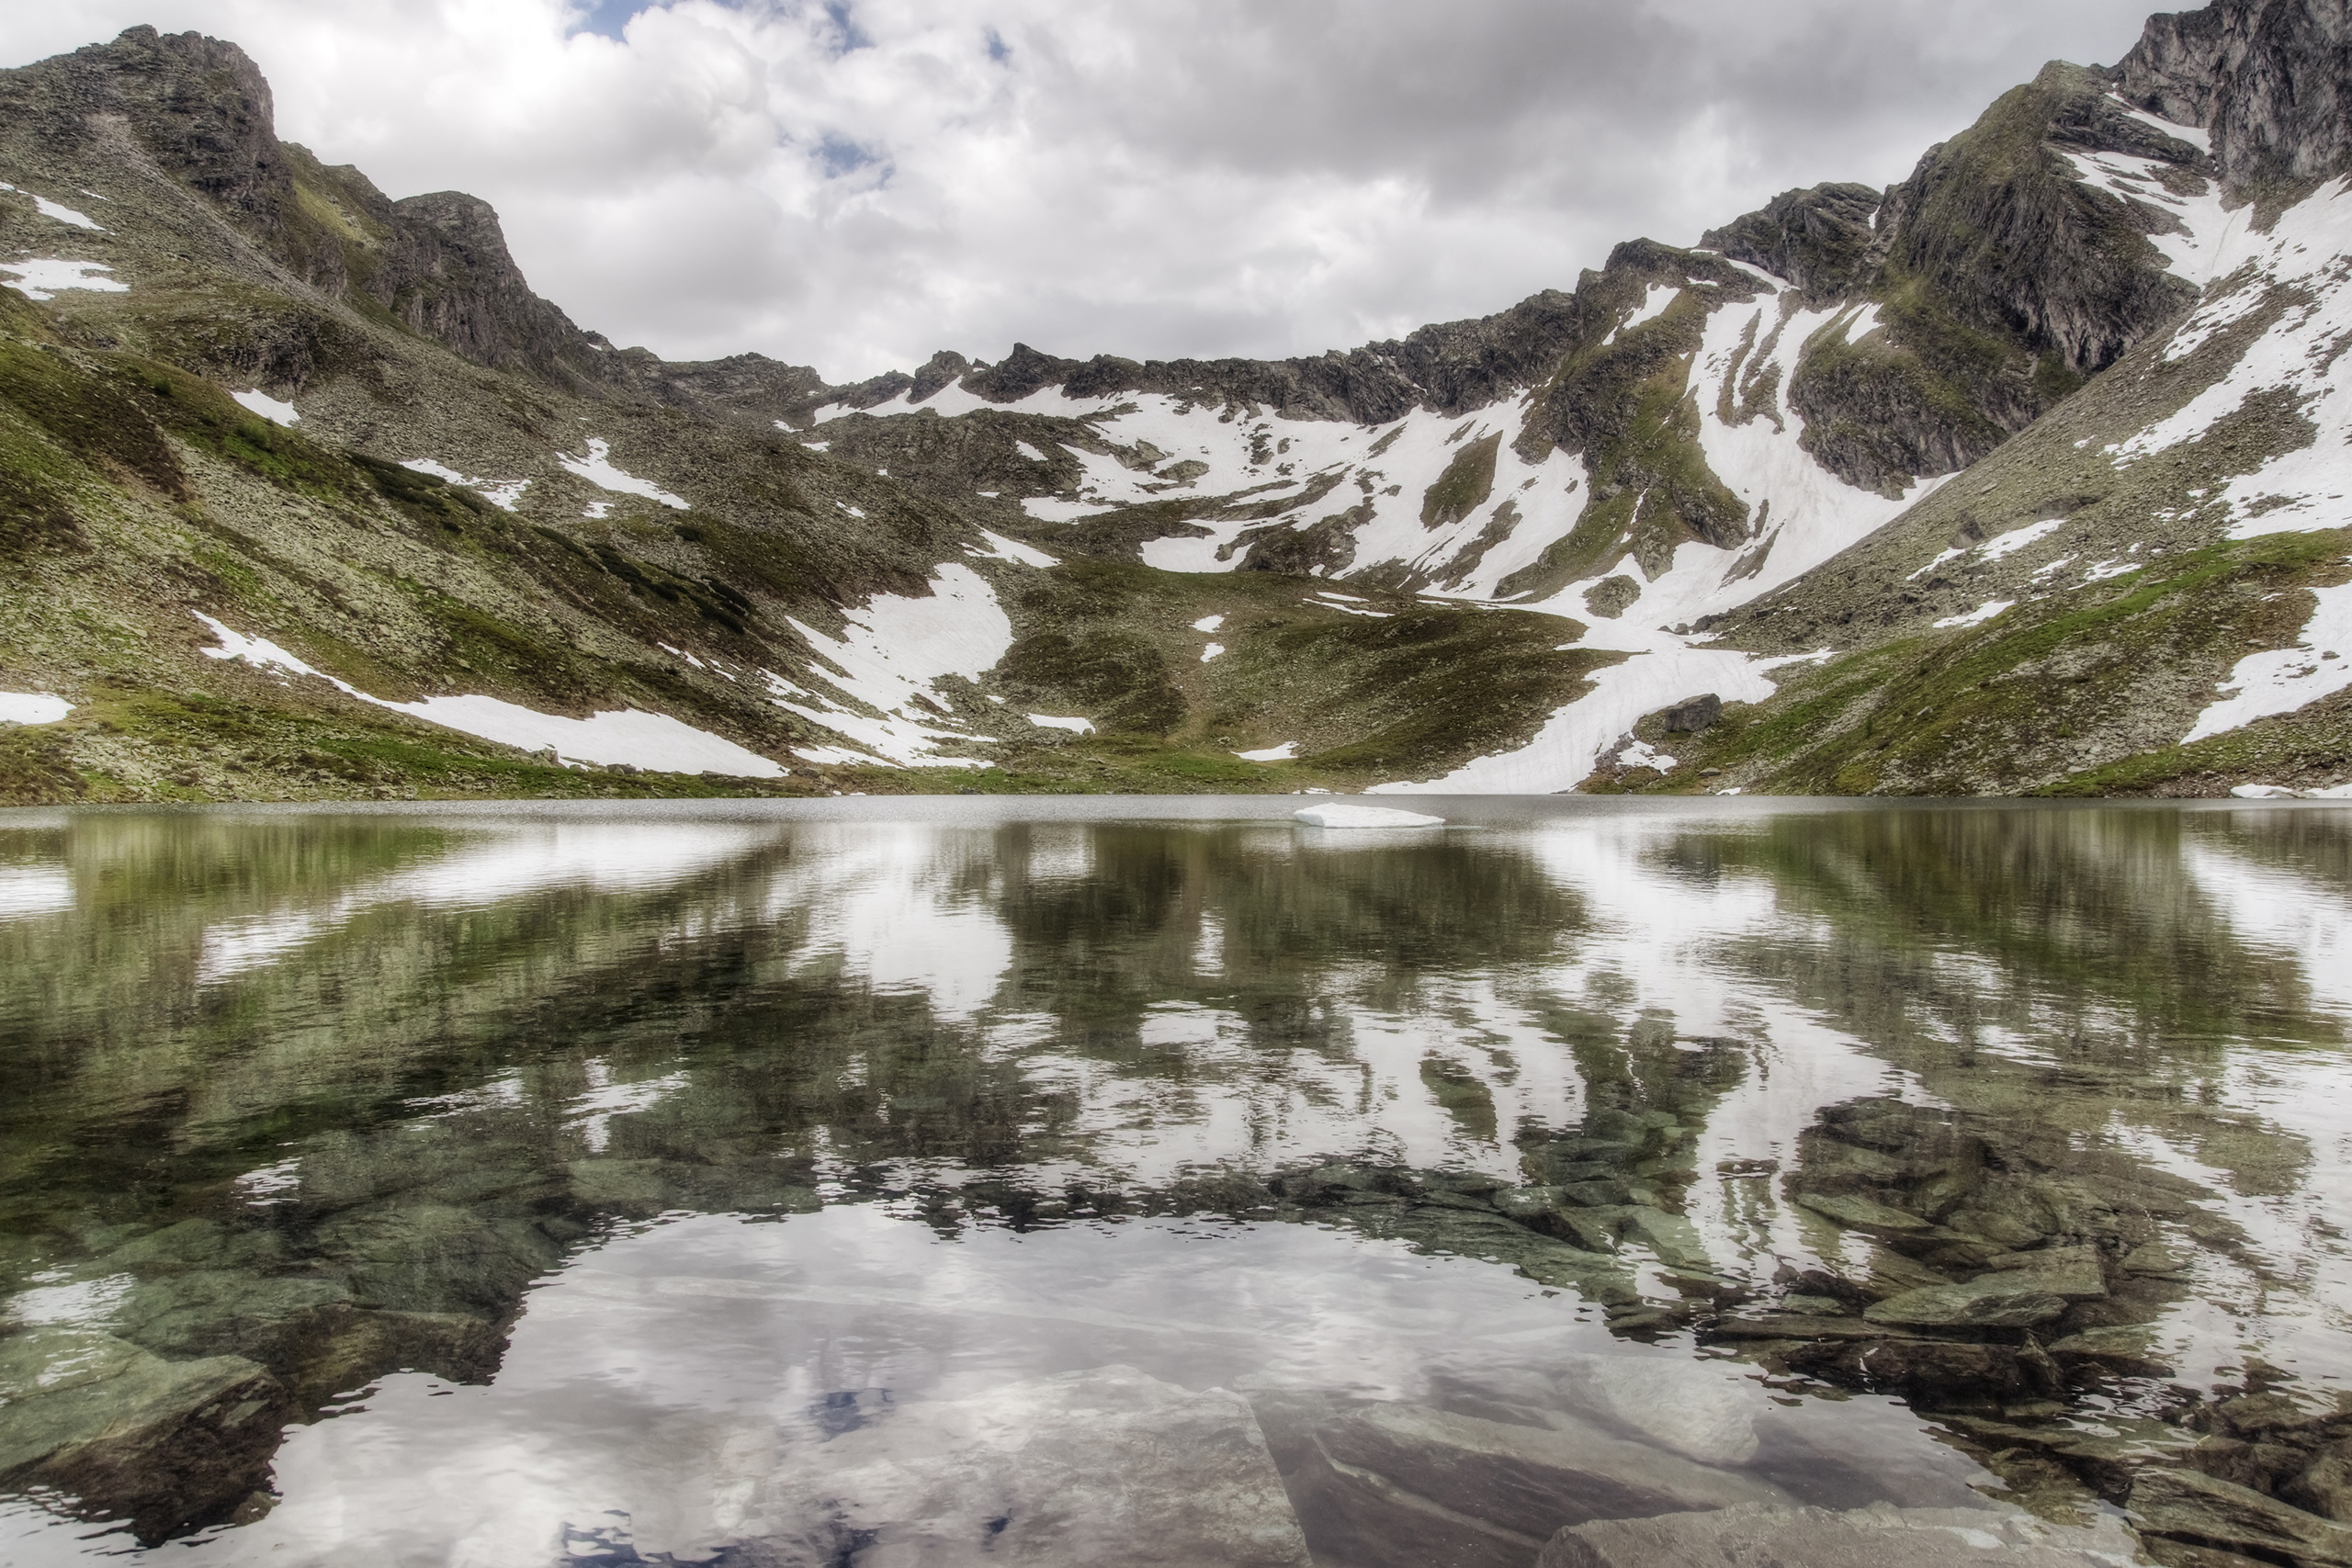 High Tauern National Park, Austria. The largest nature reserve in the Alps, this park is home to Alpine ibex, golden eagles, and even the formerly extinct, bearded vulture.